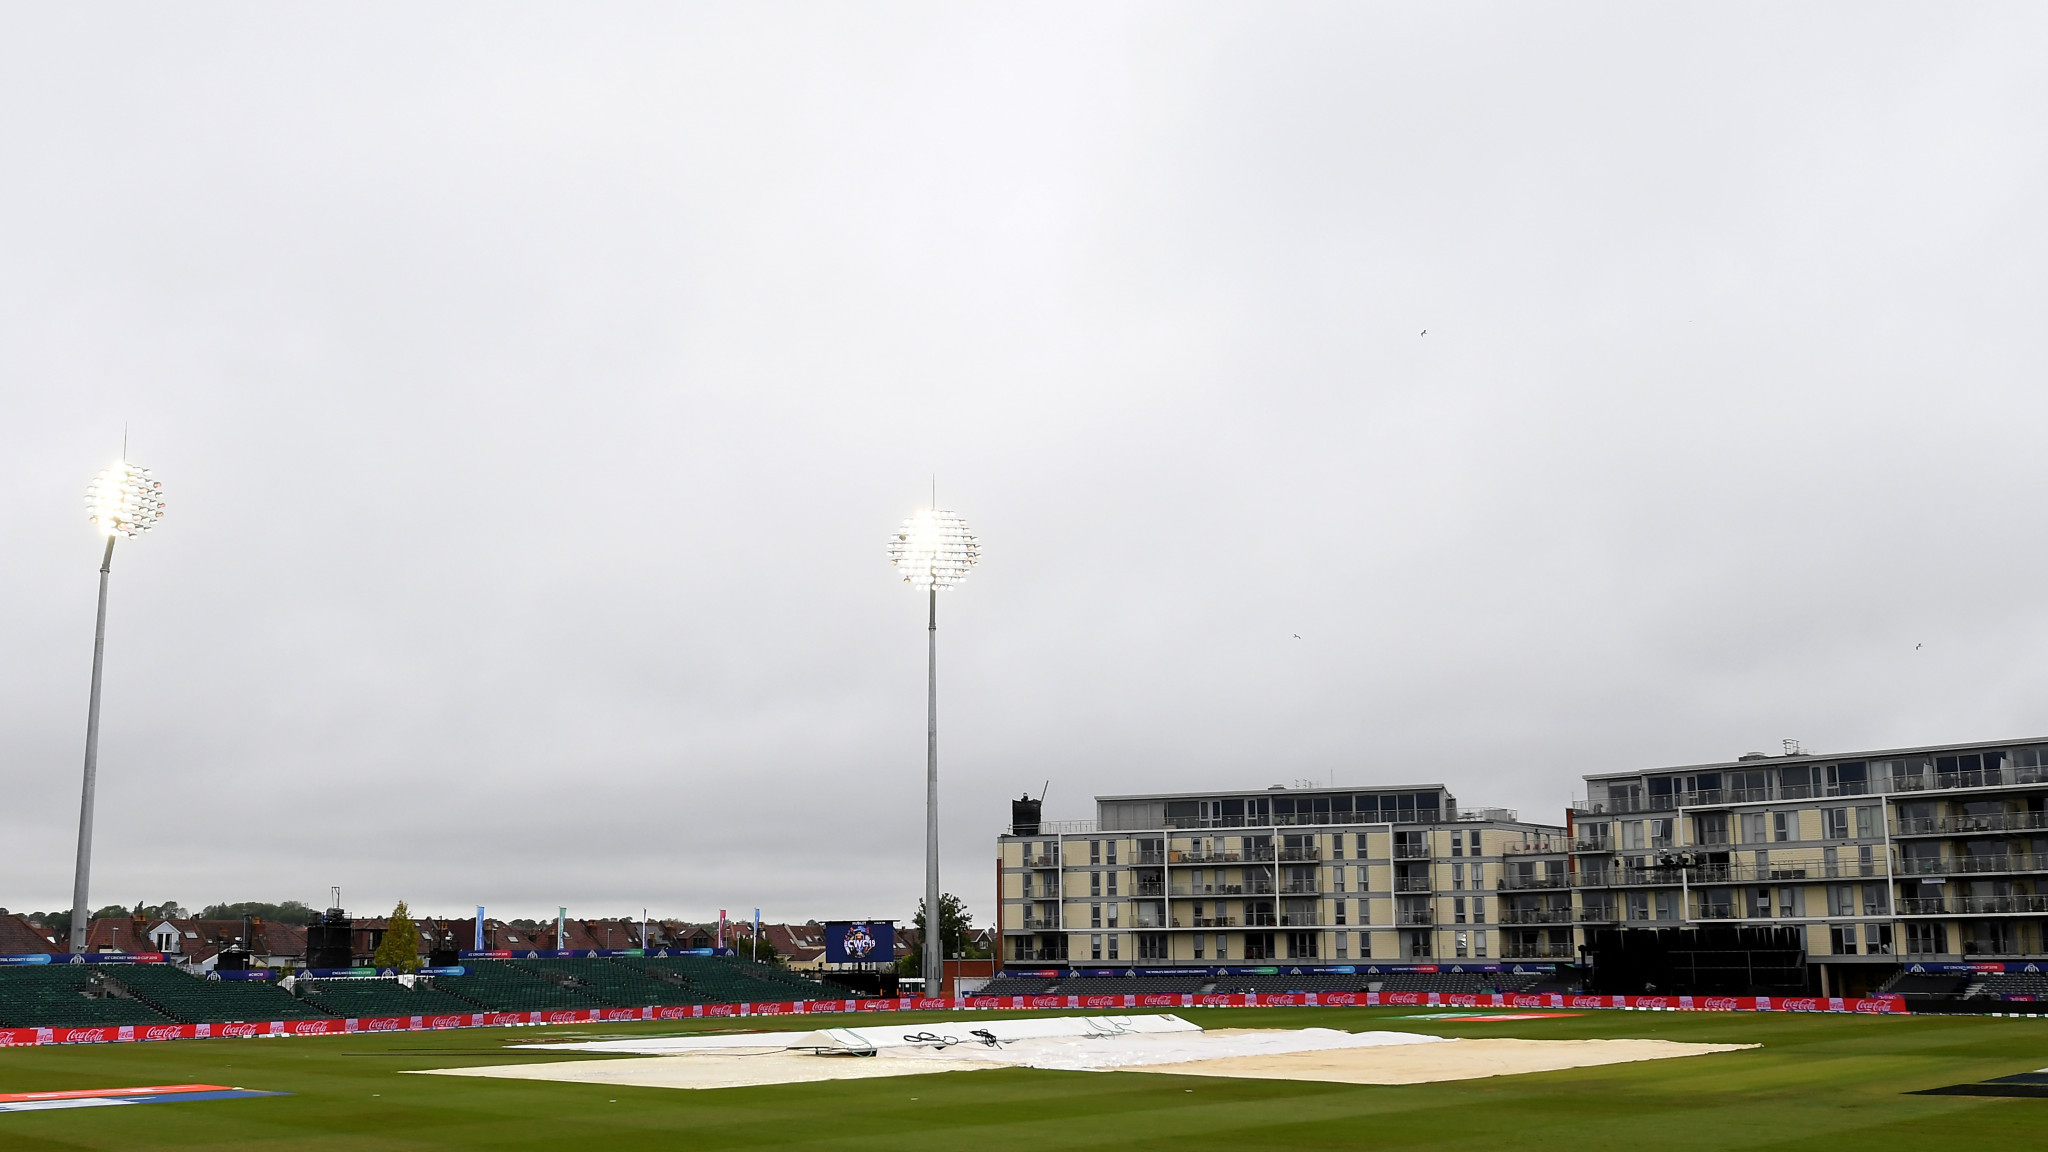 ICC Cricket World Cup warm-up matches called off due to rain